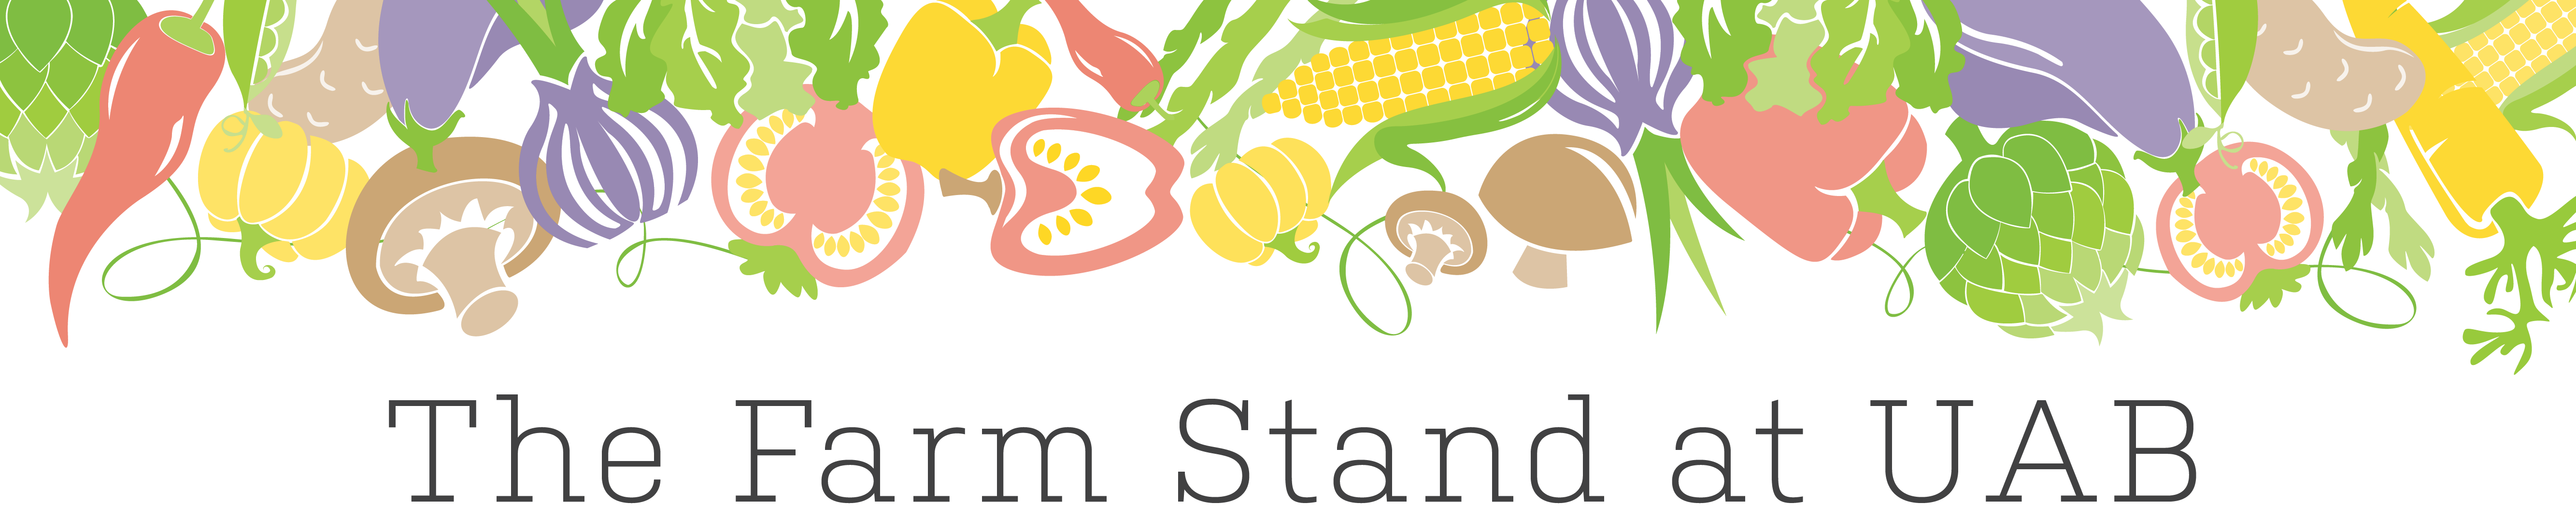 FarmStand2019Banner